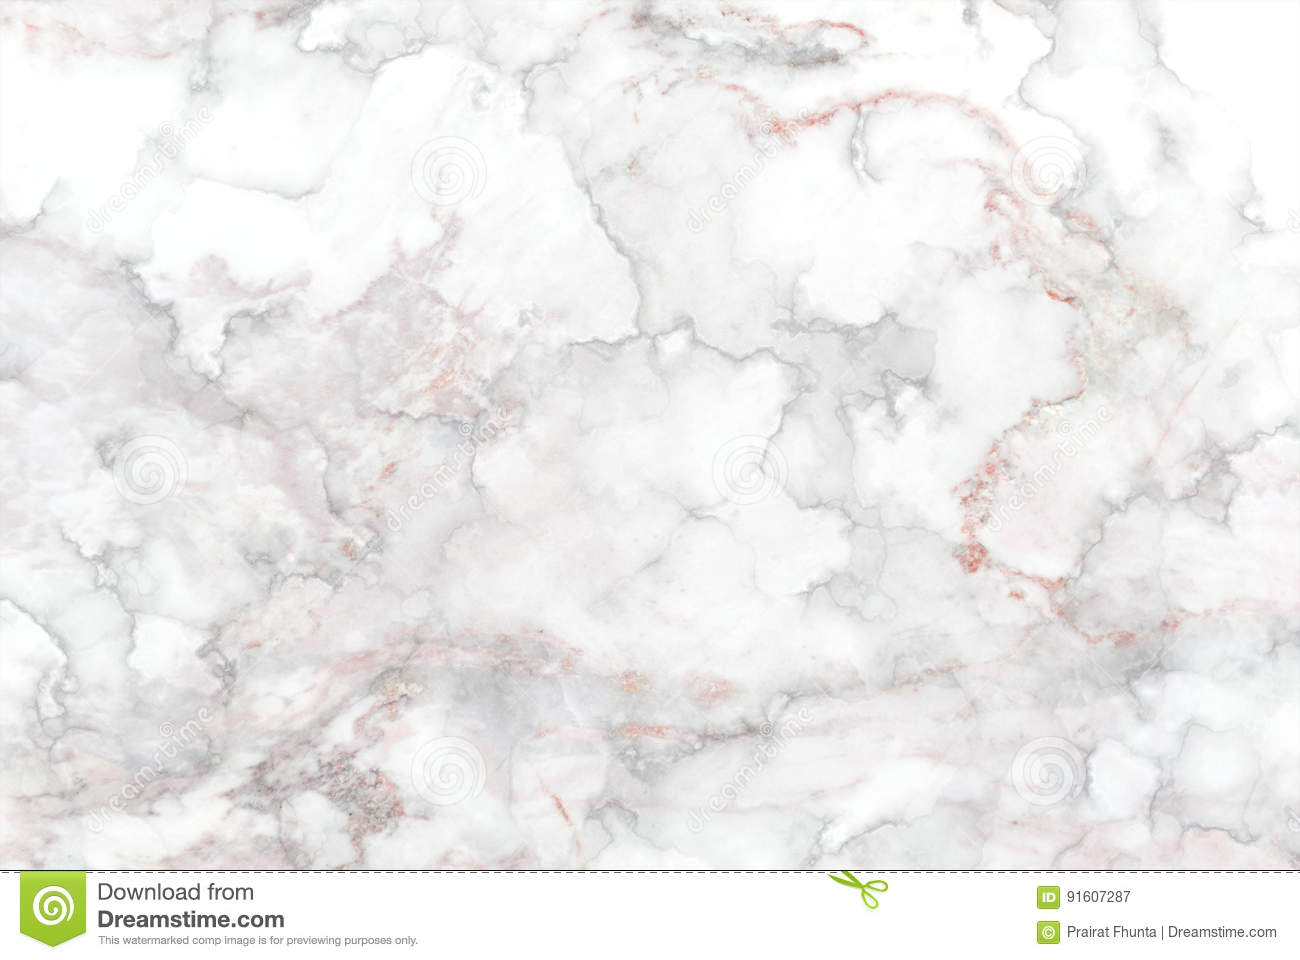 Must see Wallpaper Marble Case - white-marble-texture-pattern-skin-tile-wallpaper-luxurious-background-detailed-genuine-nature-91607287  Snapshot_524935.jpg